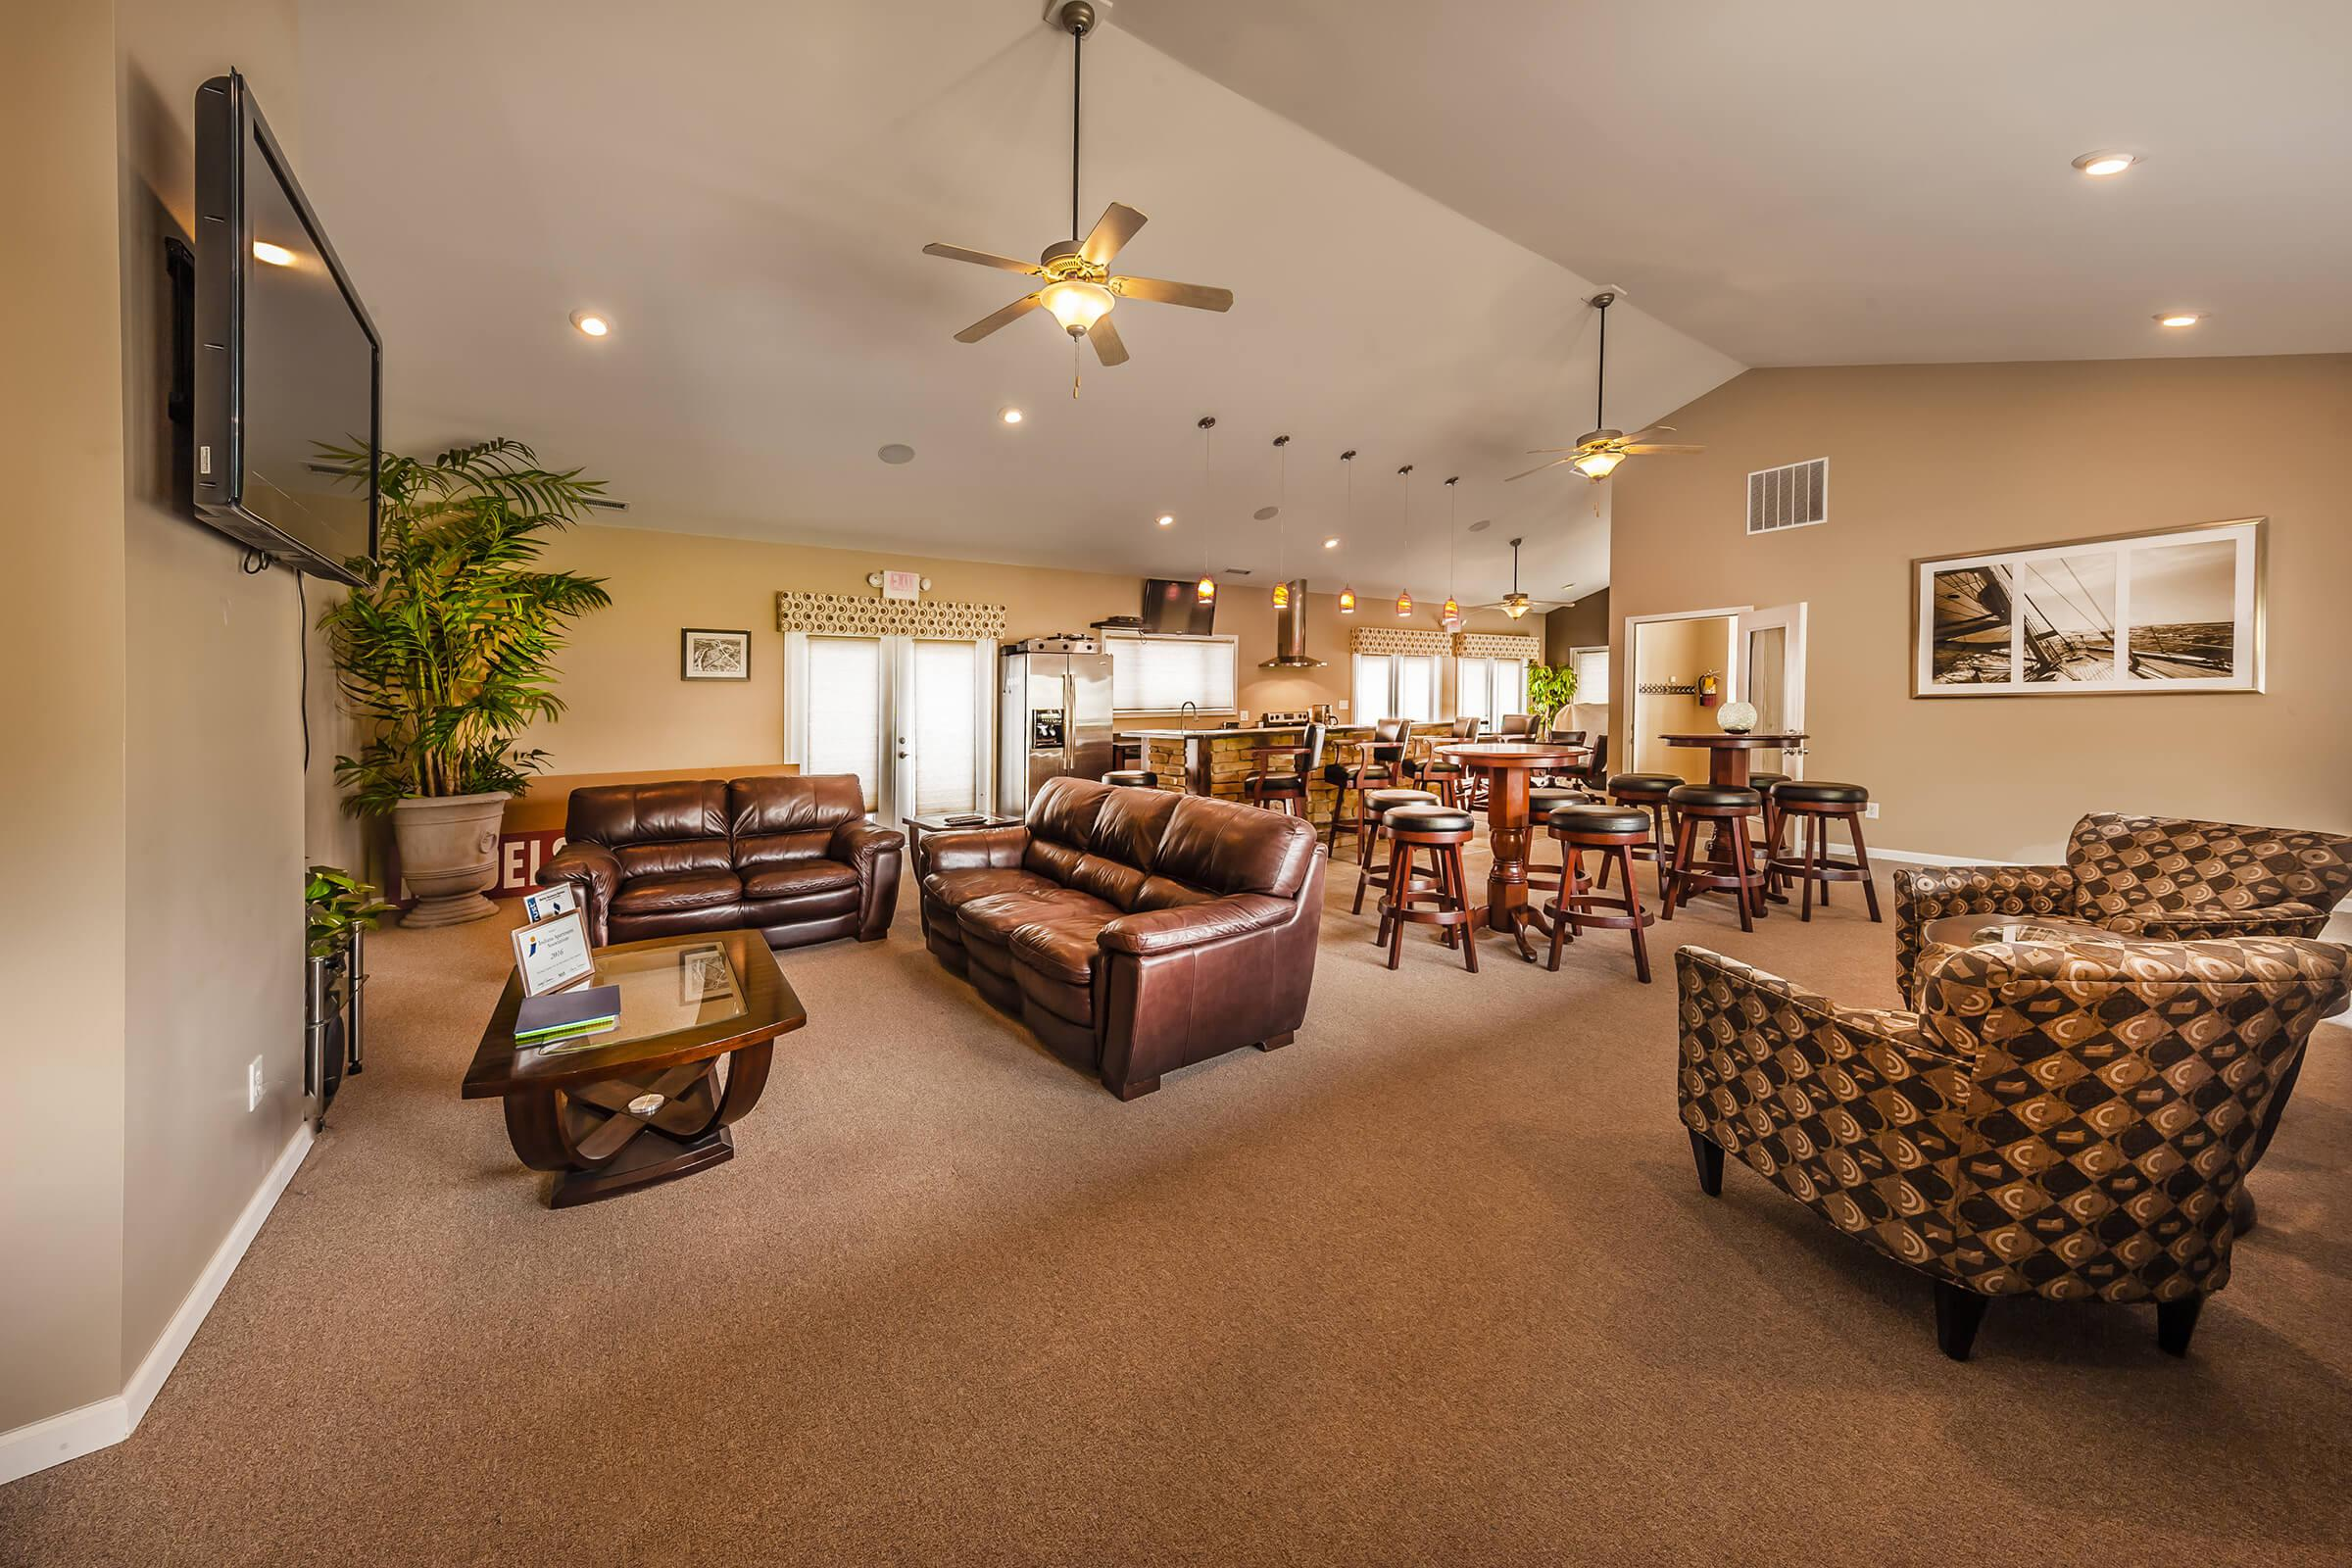 a living room filled with lots of furniture